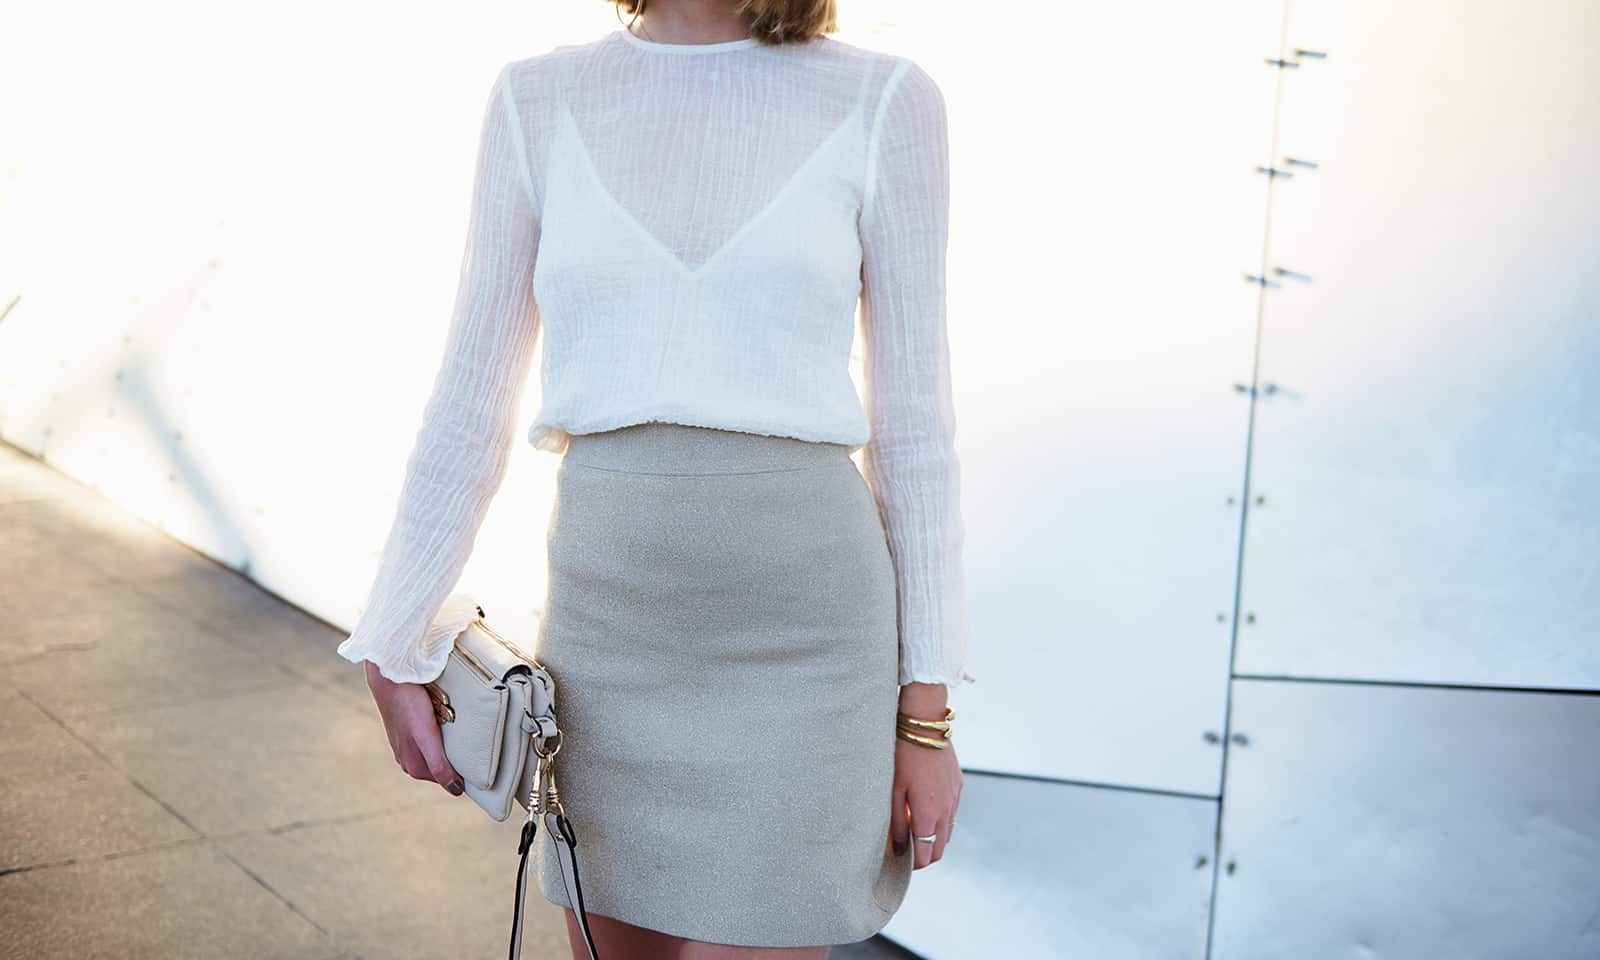 essential-items-to-wear-to-work-to-look-stylish-main-image-woman-in-minimalistic-yet-fashionable-office-attire